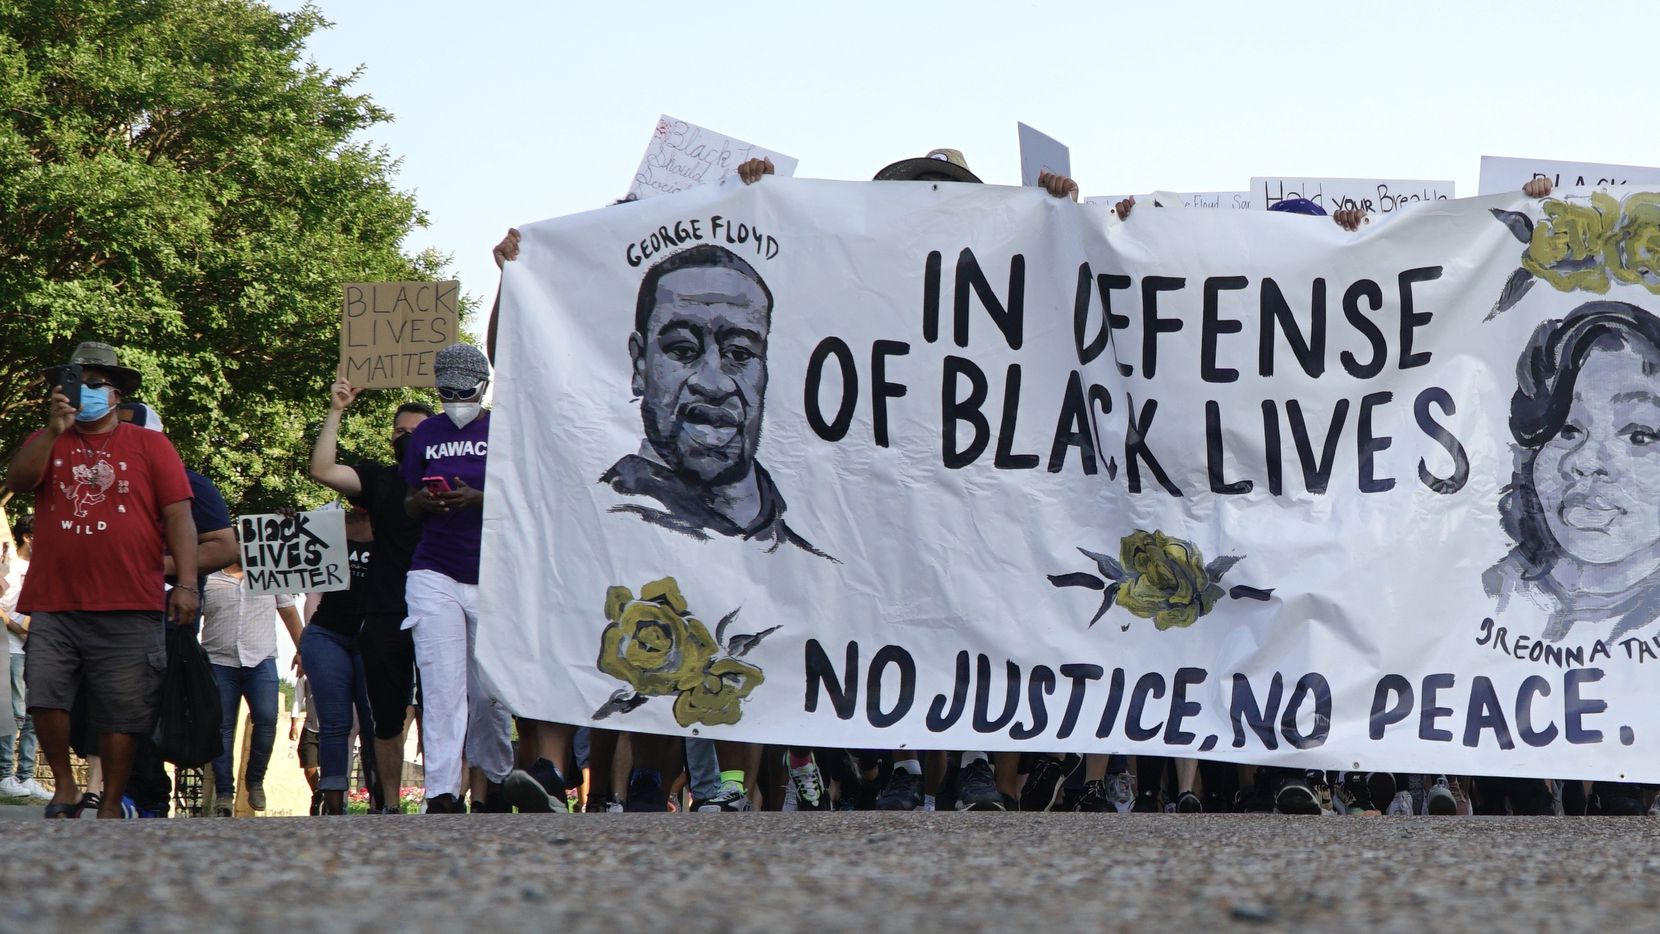 Hundreds of people marched in a protest in Irving, Texas on Monday, June 8, 2020. The protest was to show solidarity in the midst of the latest killing of George Floyd, a black man in Minnesota.